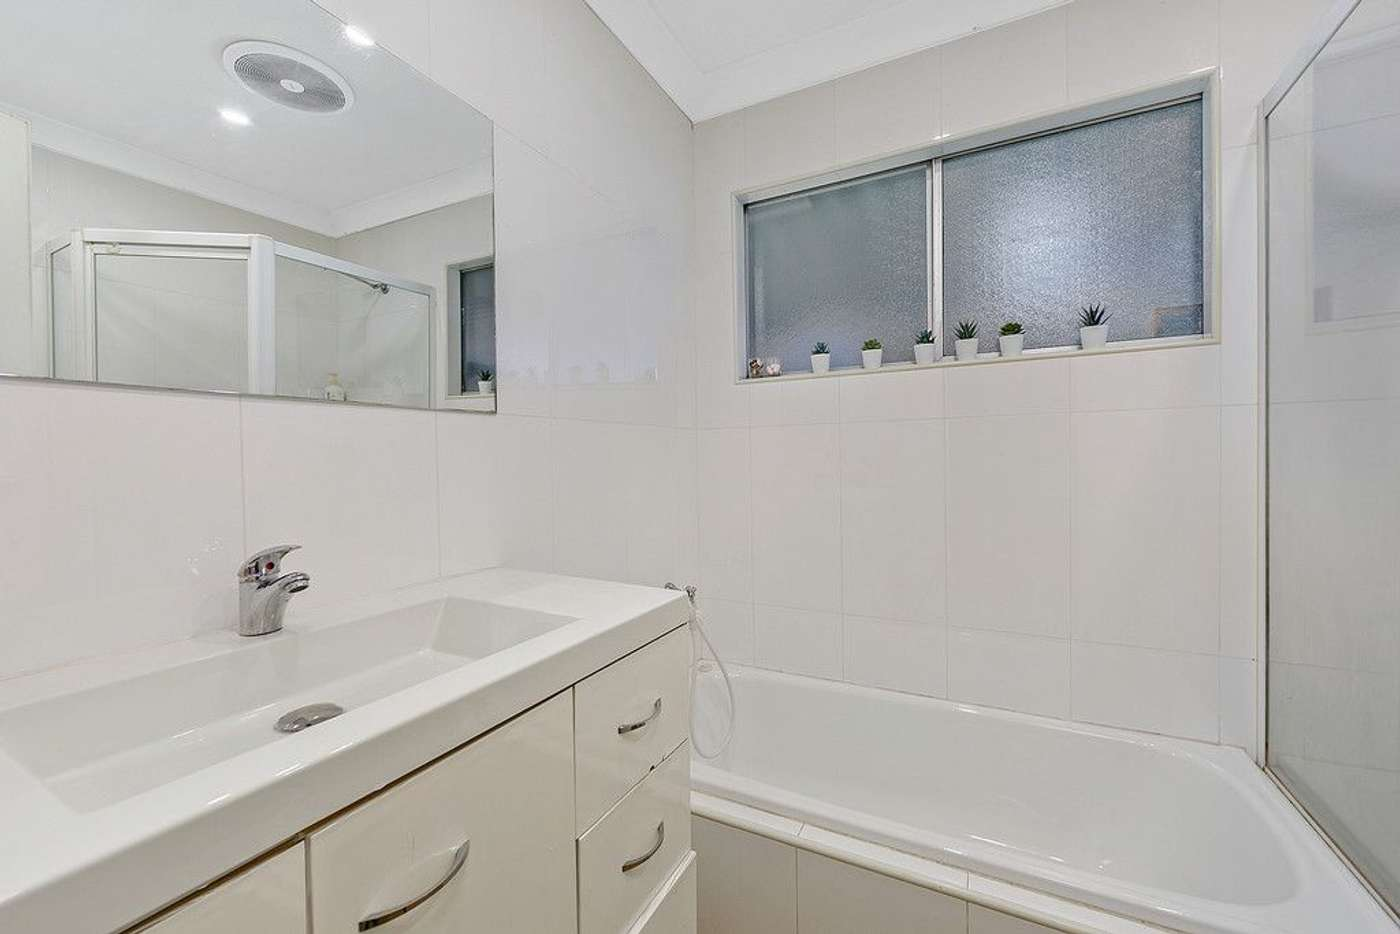 Sixth view of Homely house listing, 130 Davis Road, Marayong NSW 2148